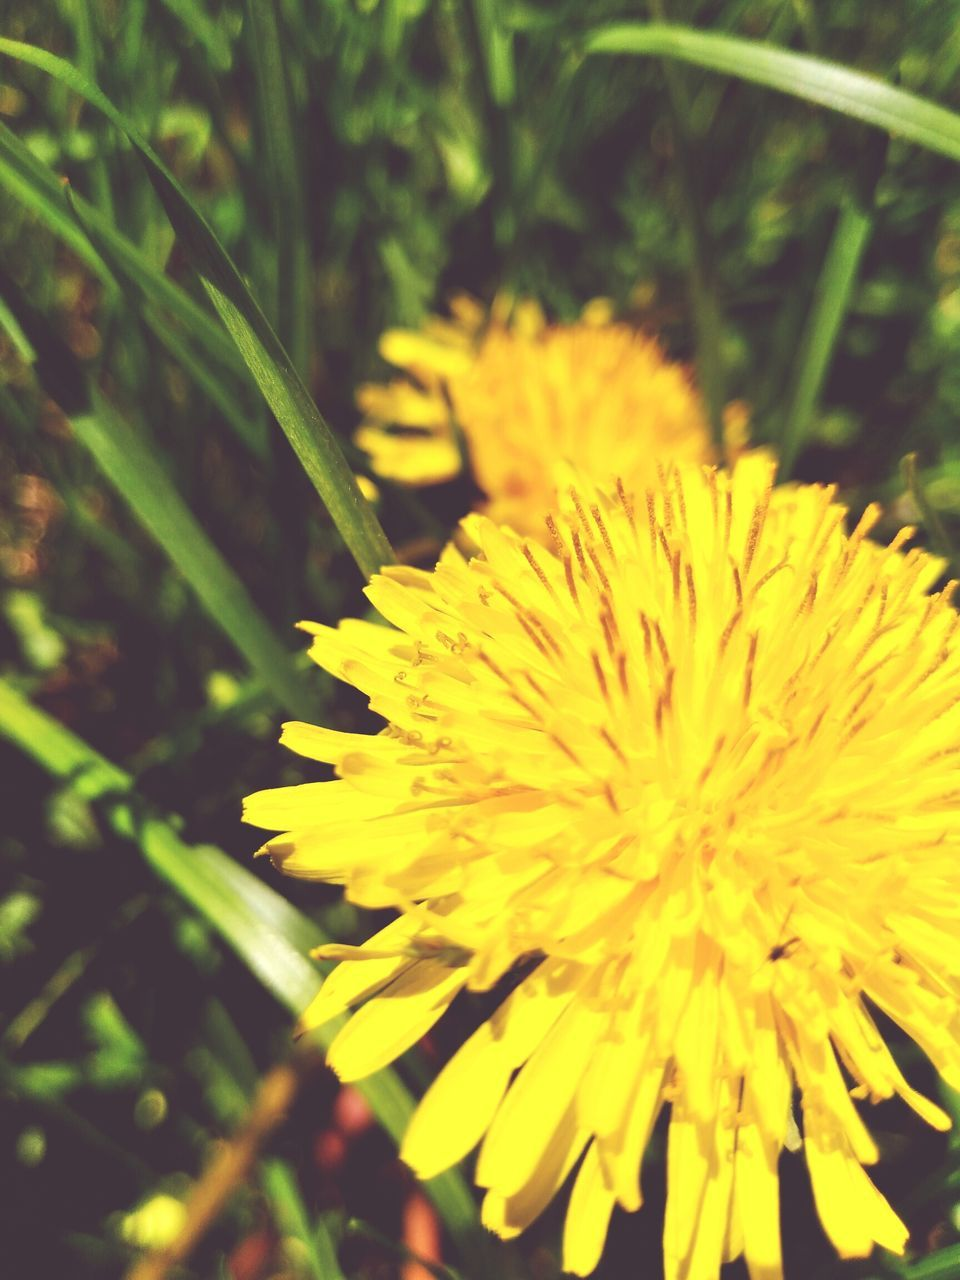 flower, yellow, fragility, nature, beauty in nature, growth, freshness, plant, petal, outdoors, focus on foreground, close-up, flower head, botany, selective focus, day, no people, springtime